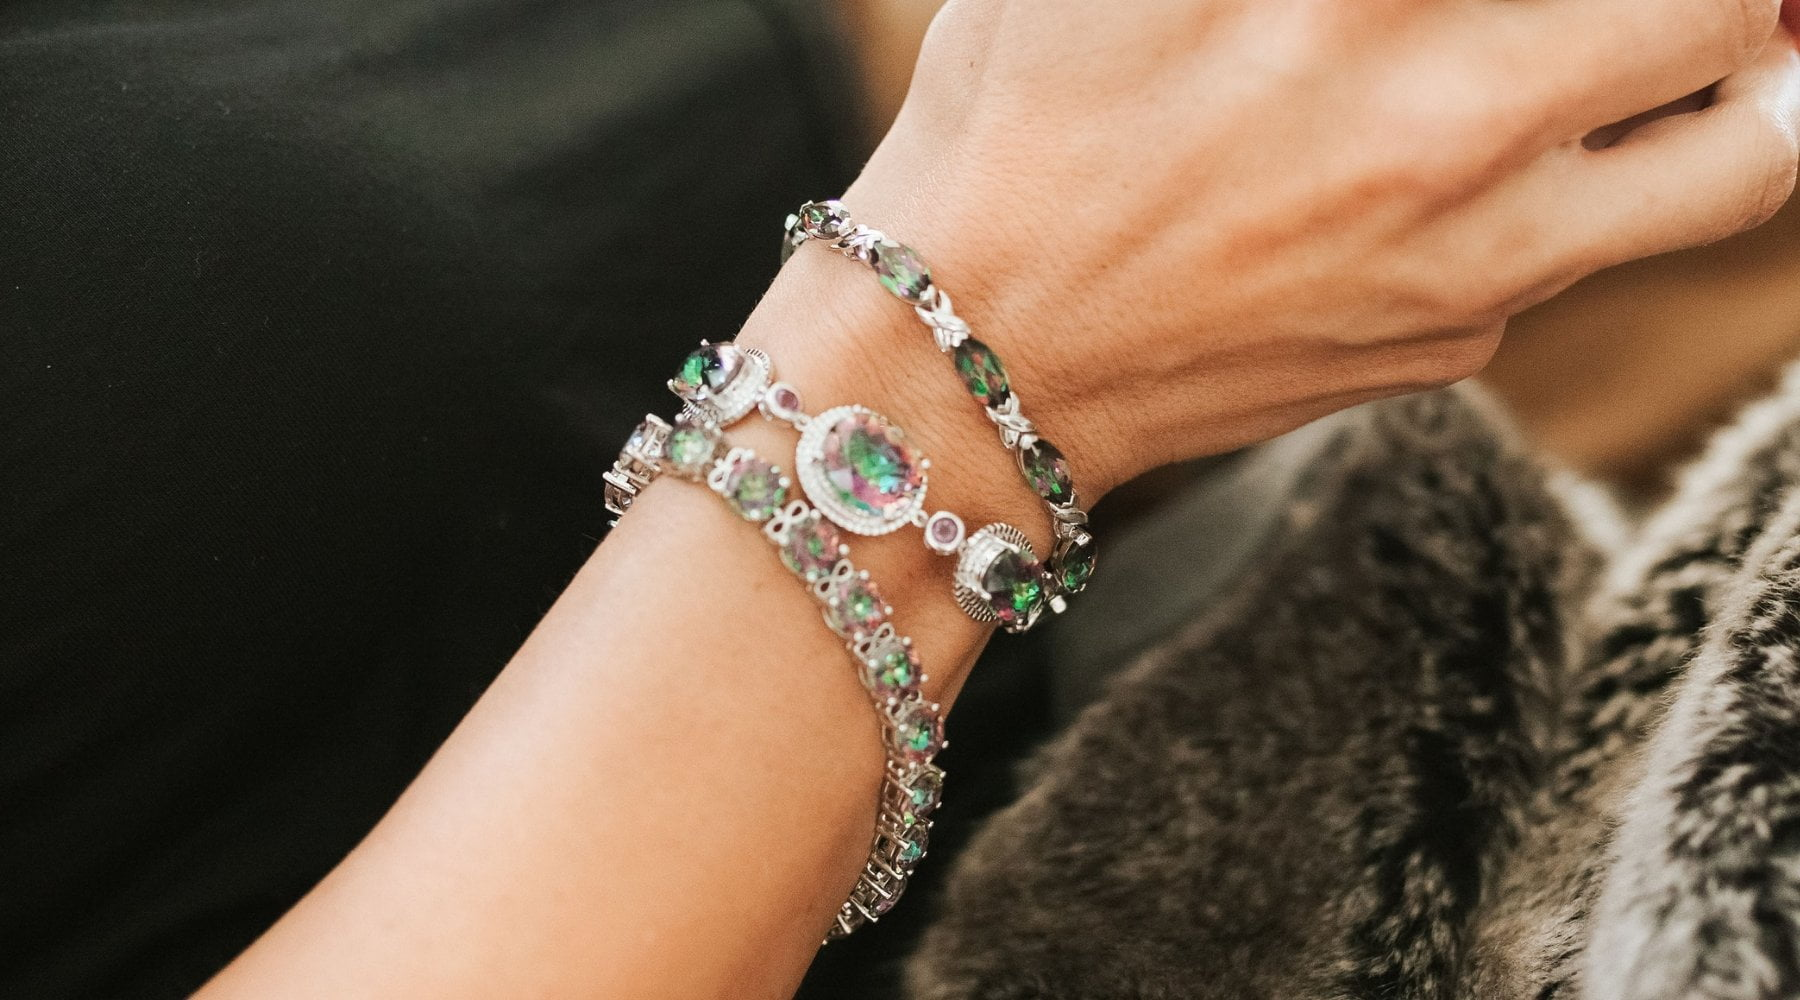 9 Fashion Tips for Wearing Bracelets on Both Wrists